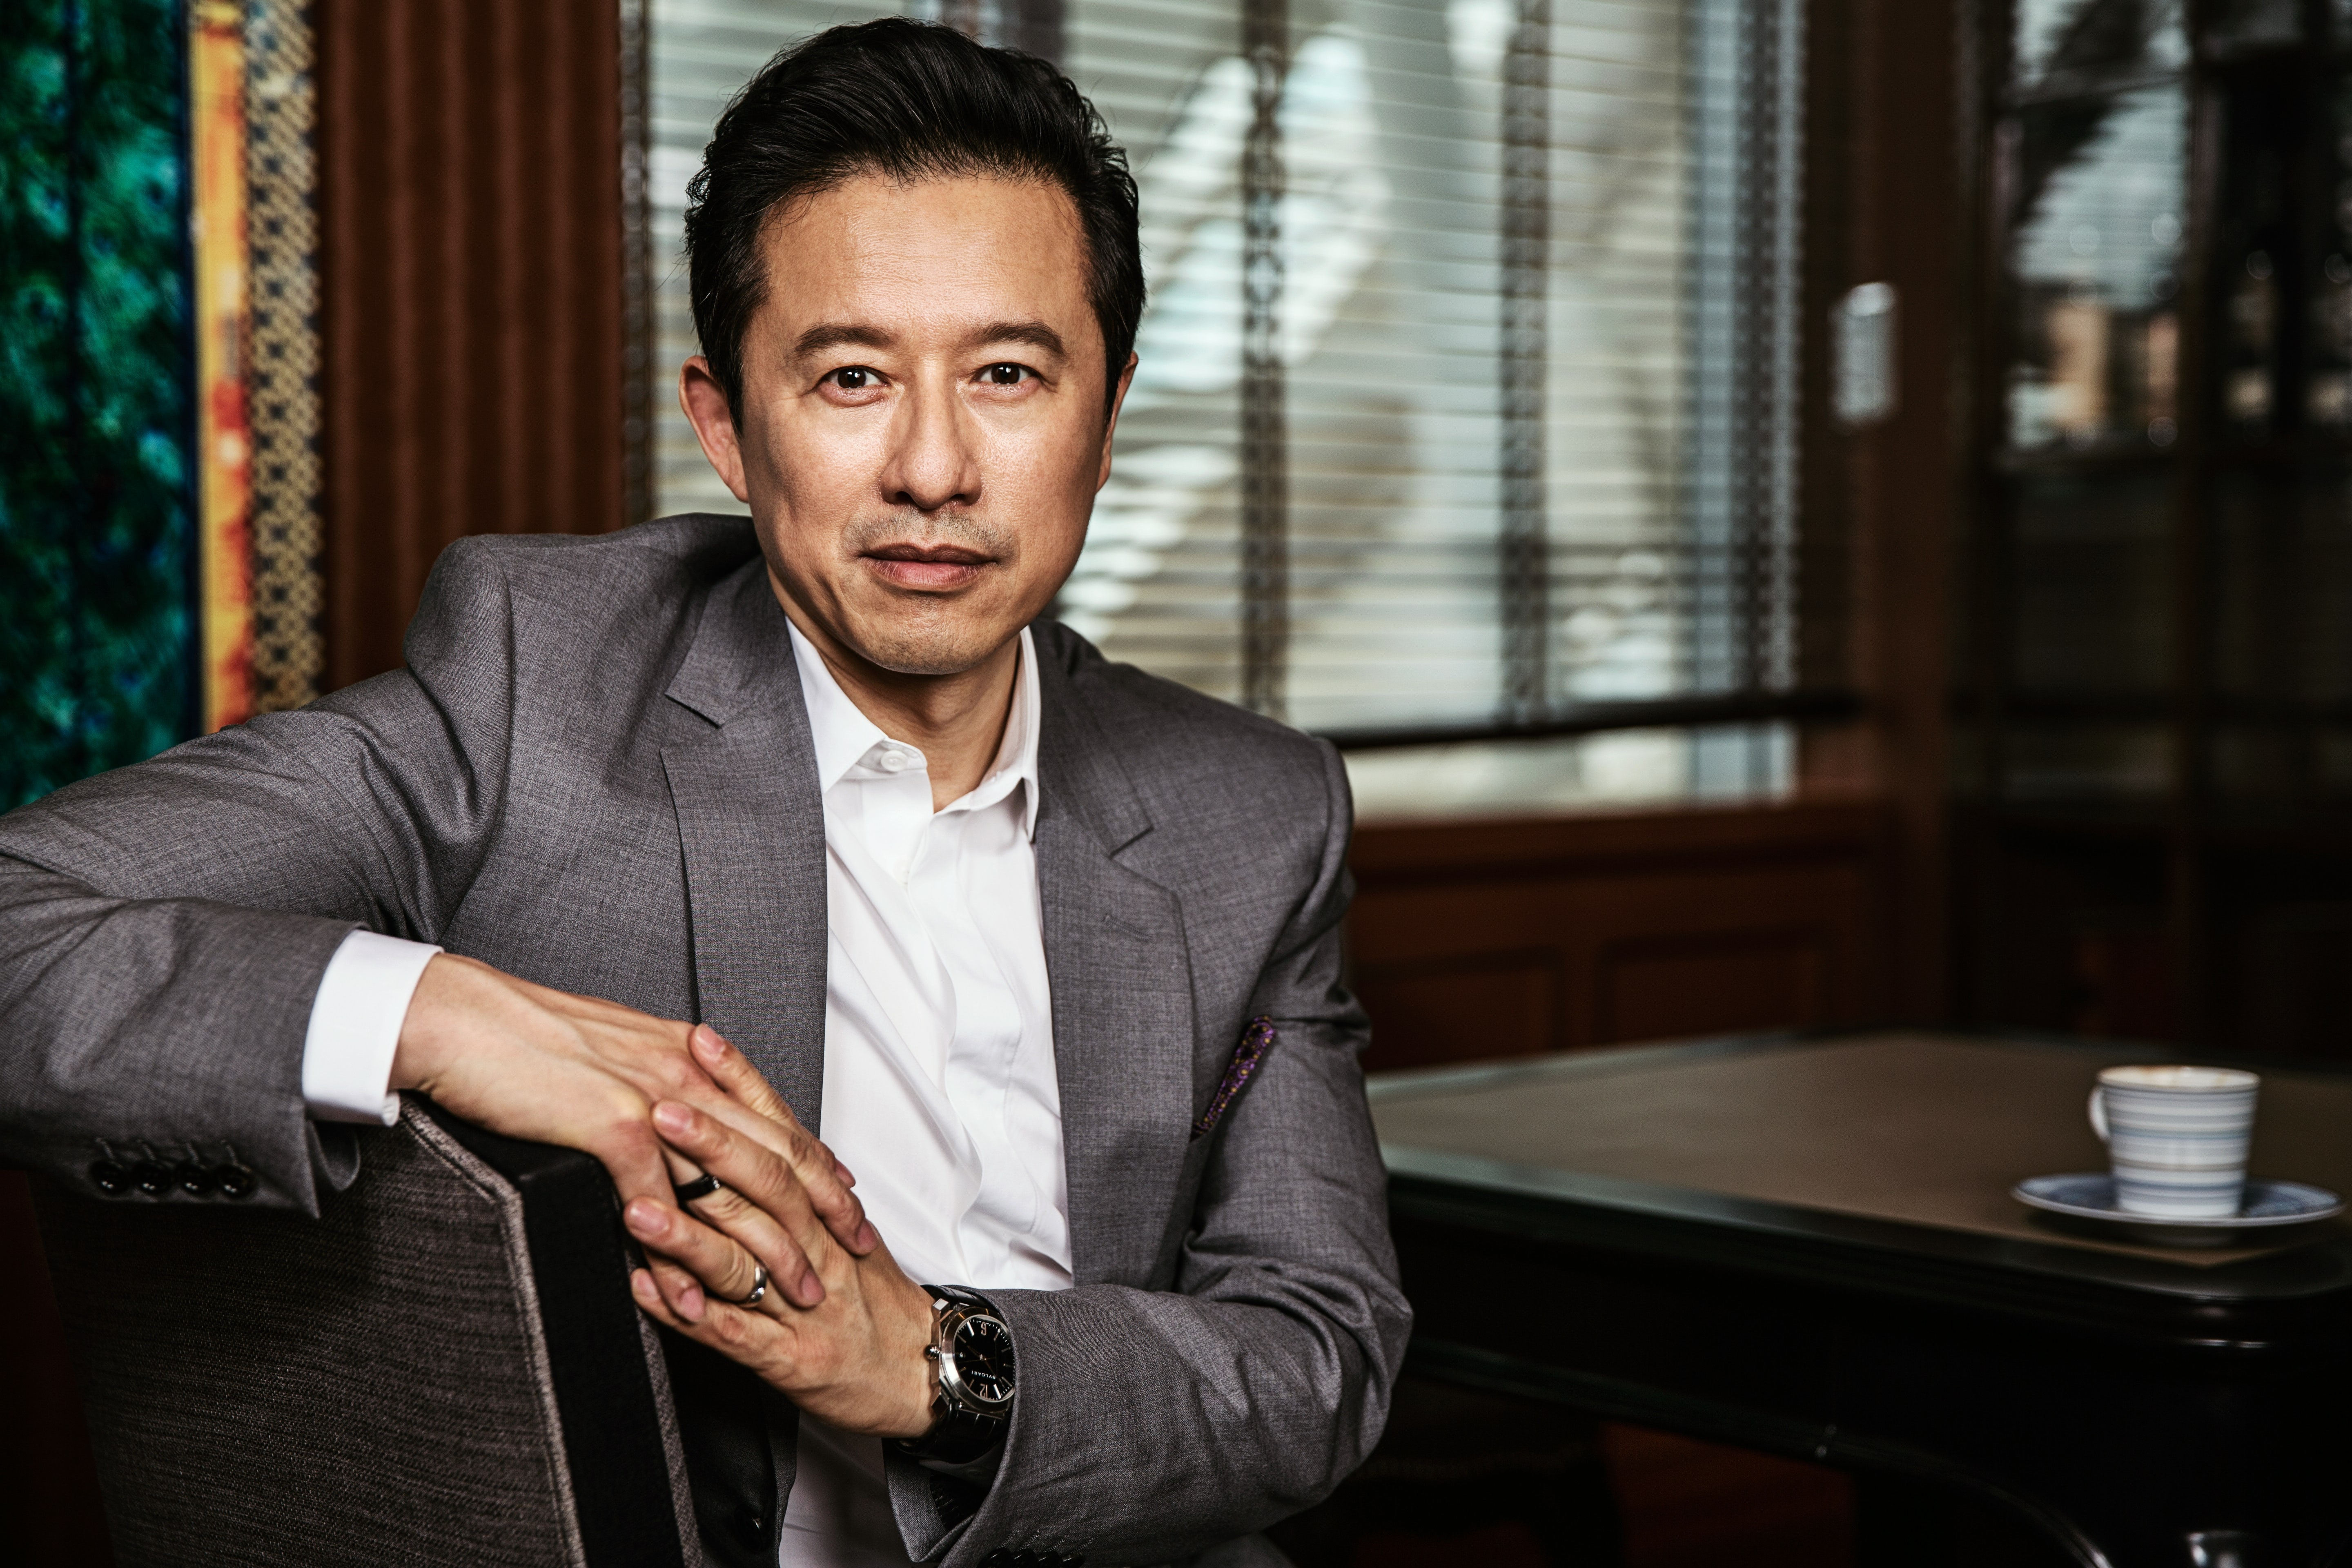 'China Oracle' Warns Not to 'Take it Easy' in World's Largest Luxury Market